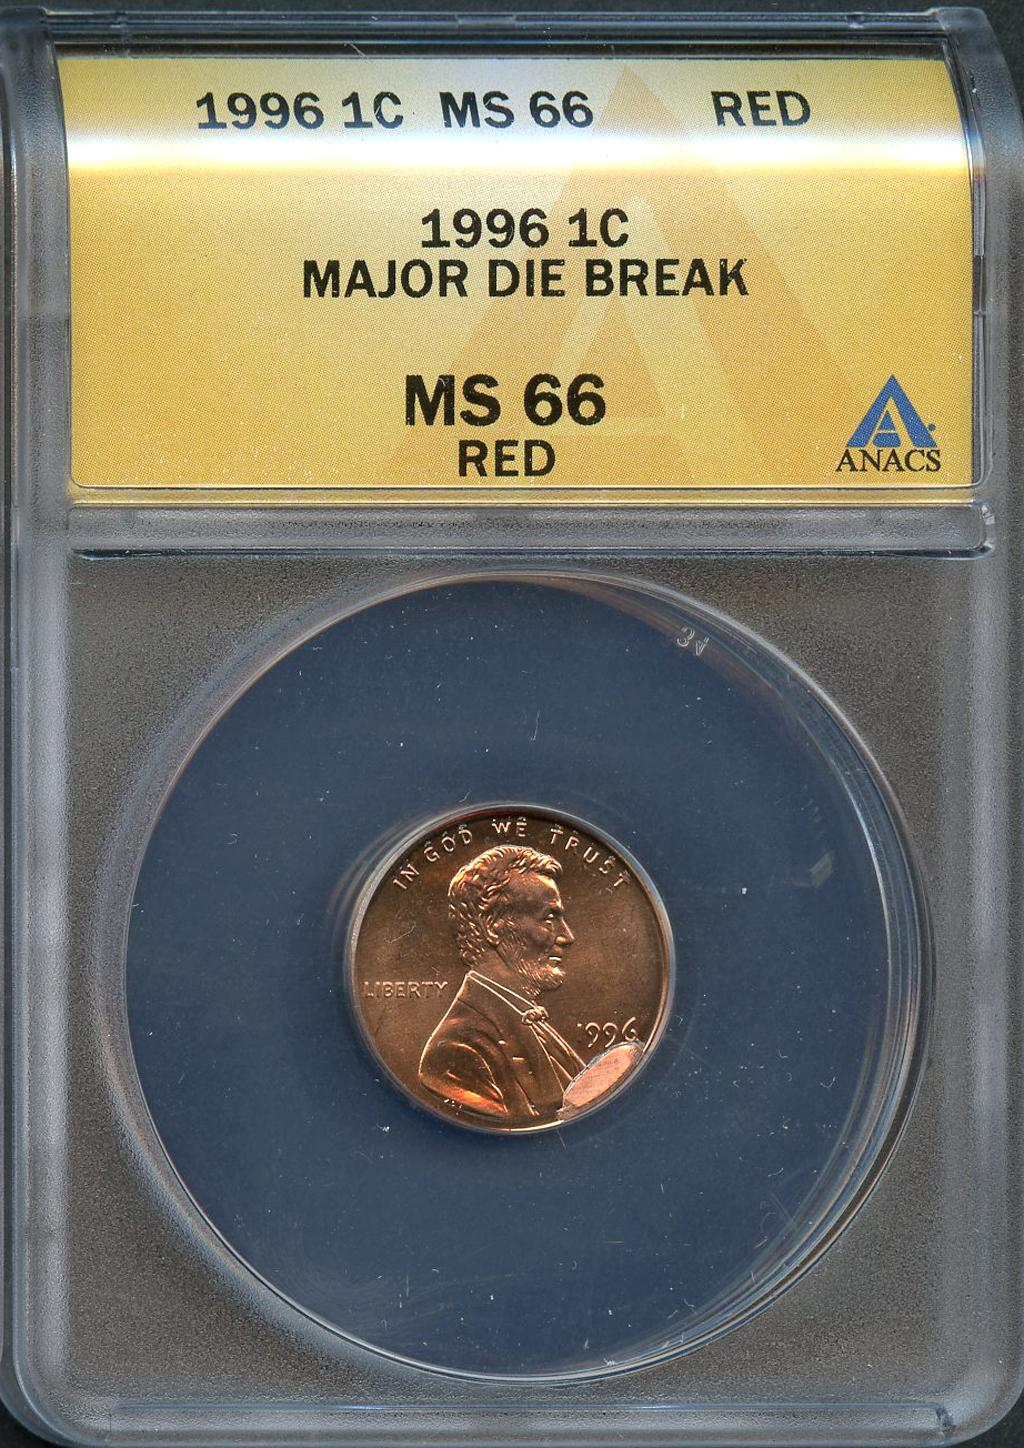 1996 Major Cud ERROR Die Break Lincoln Cent in ANACS MS 66 Red